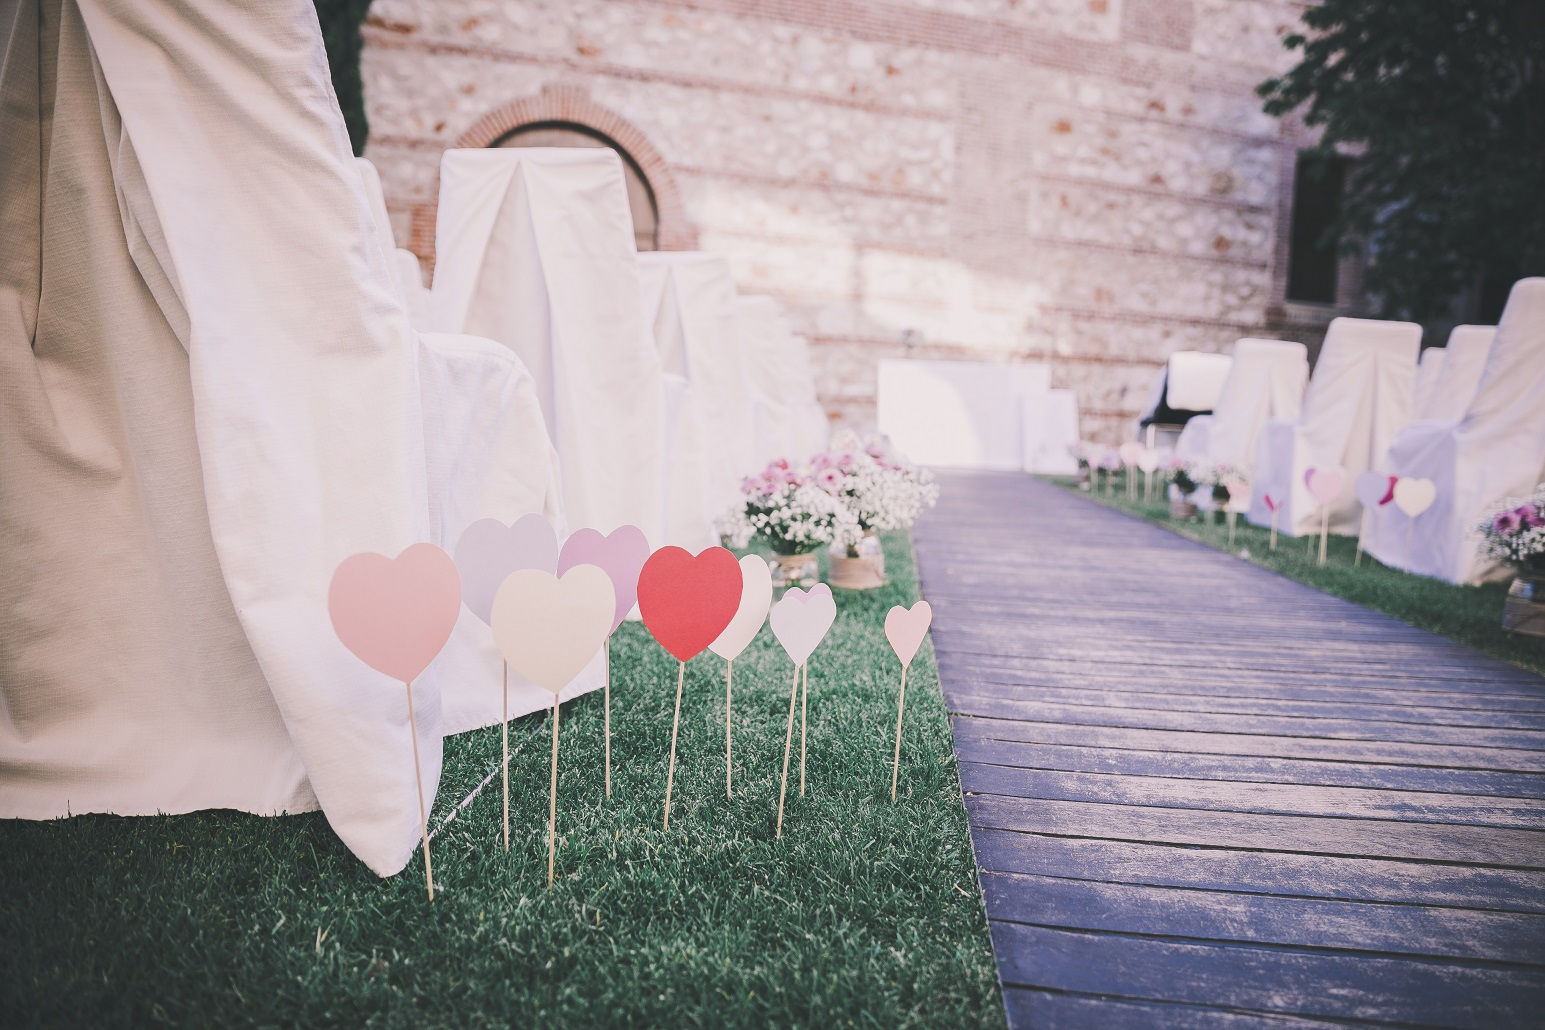 nn_wedding_decoracion_corazones.JPG